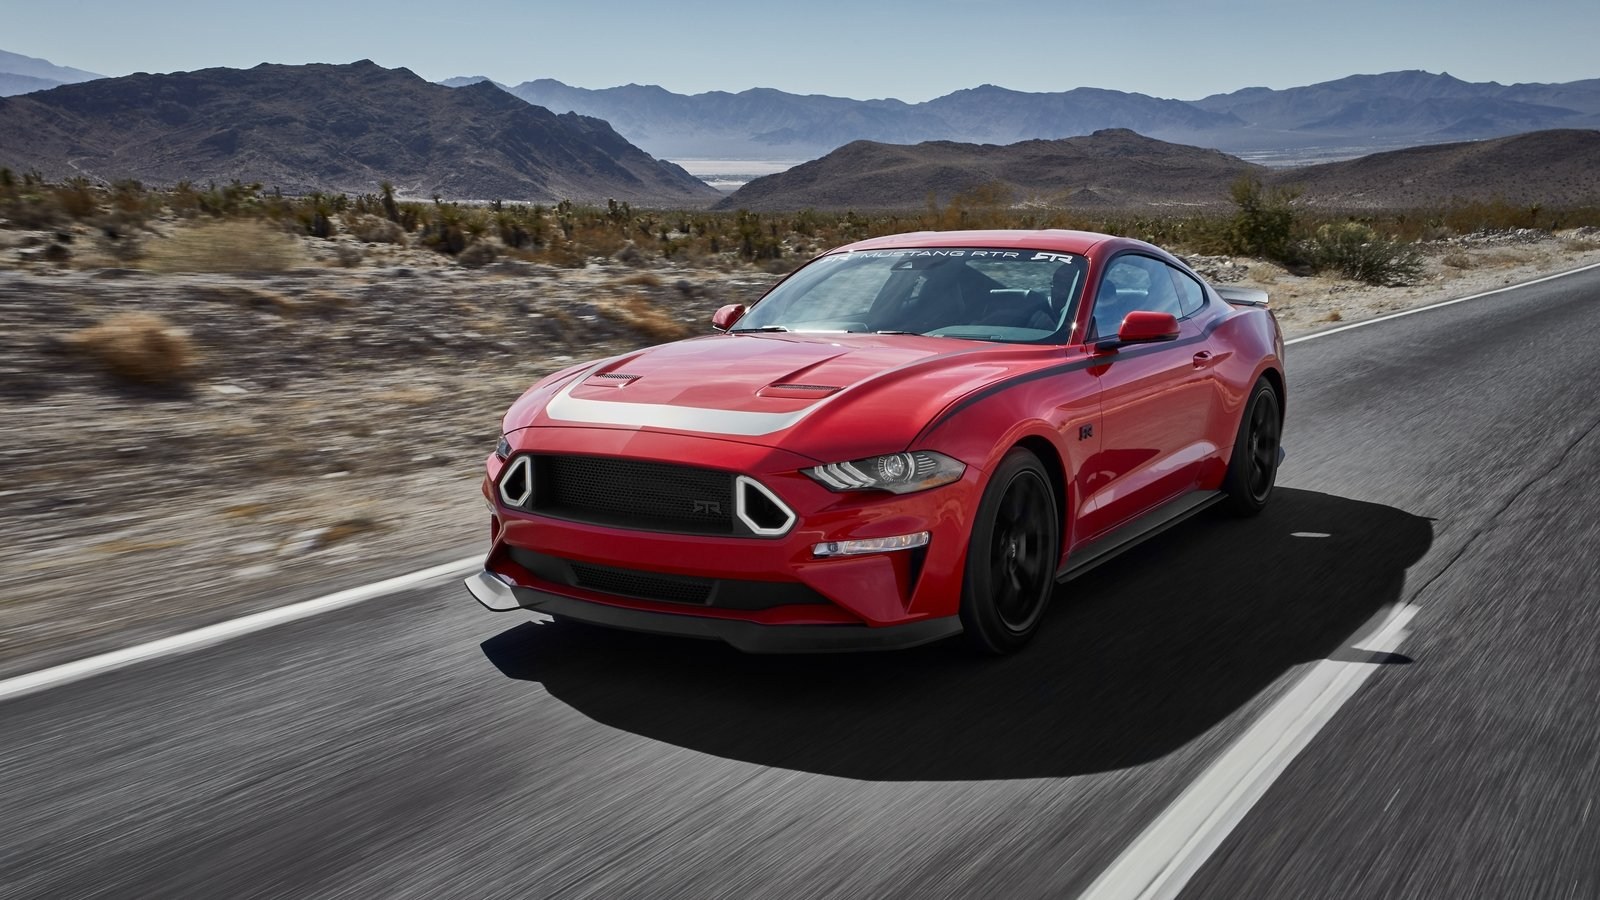 2019 Series 1 Ford Mustang Rtr Top Speed